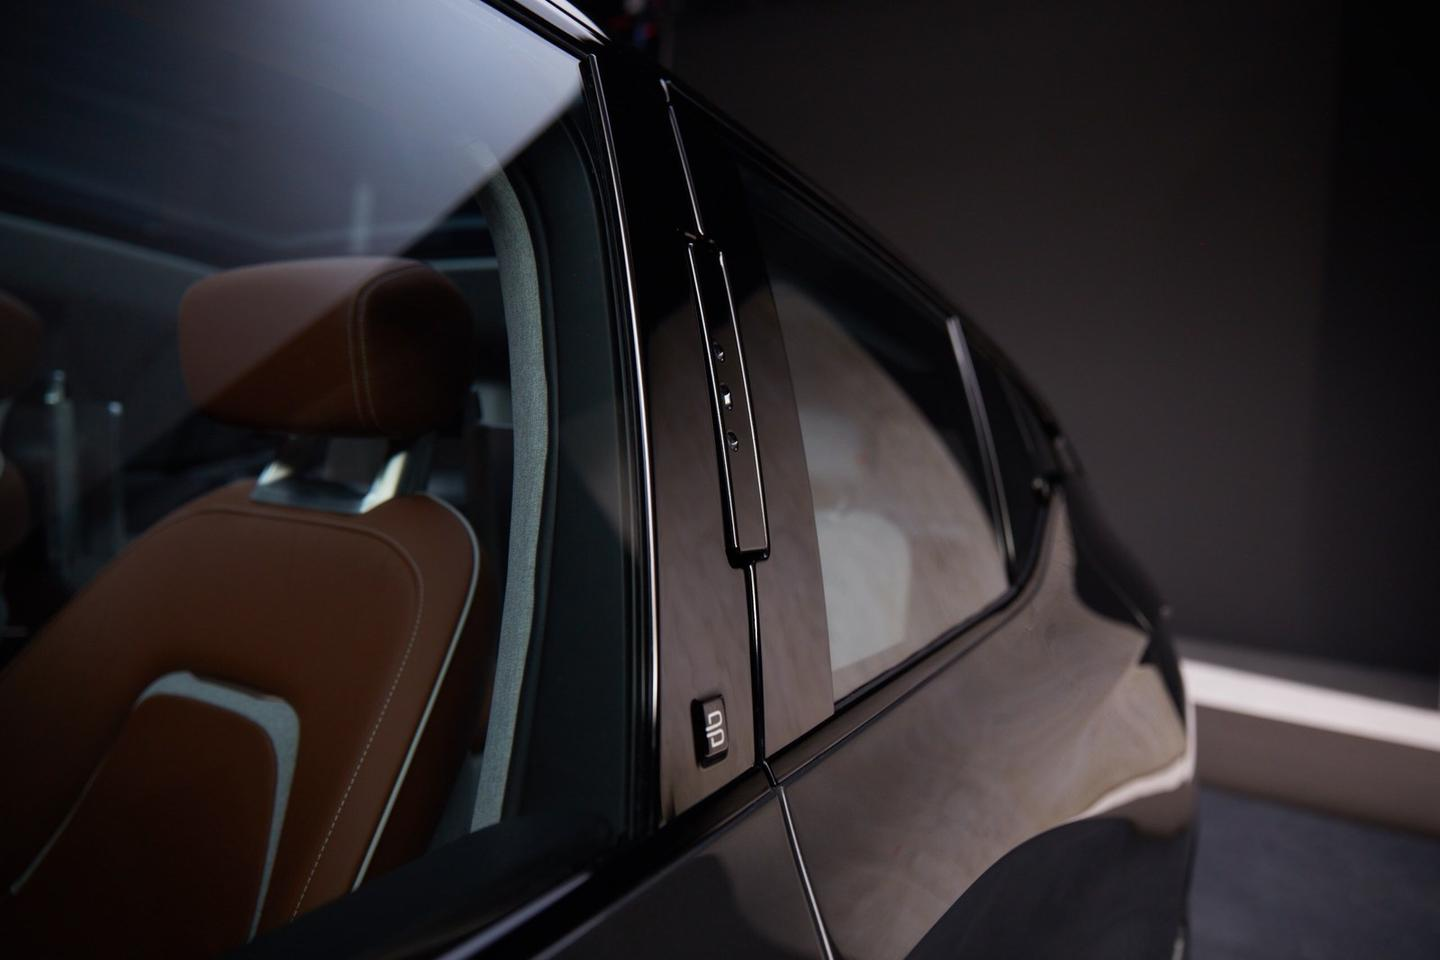 The facial recognition cameras are interesting, but they don't seem tolend a cleaner profile look versus door handles